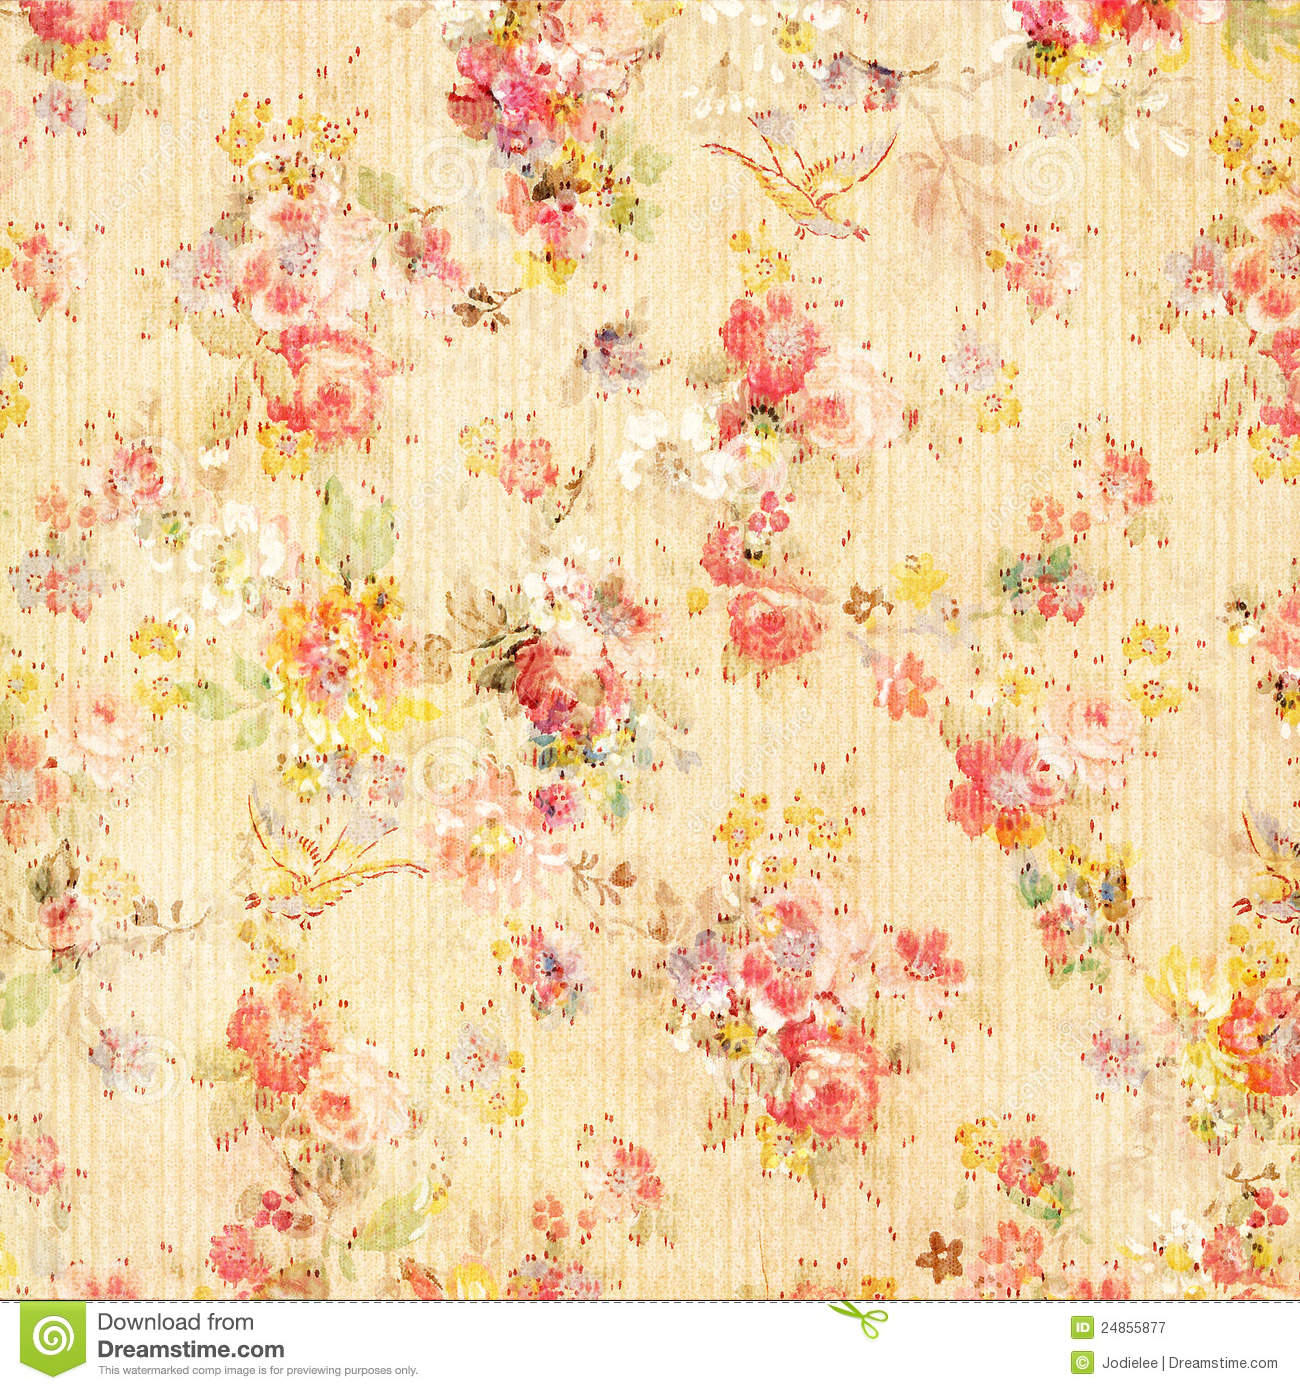 shabby chic vintage antique rose floral wallpaper royalty free stock photography image 24855877. Black Bedroom Furniture Sets. Home Design Ideas